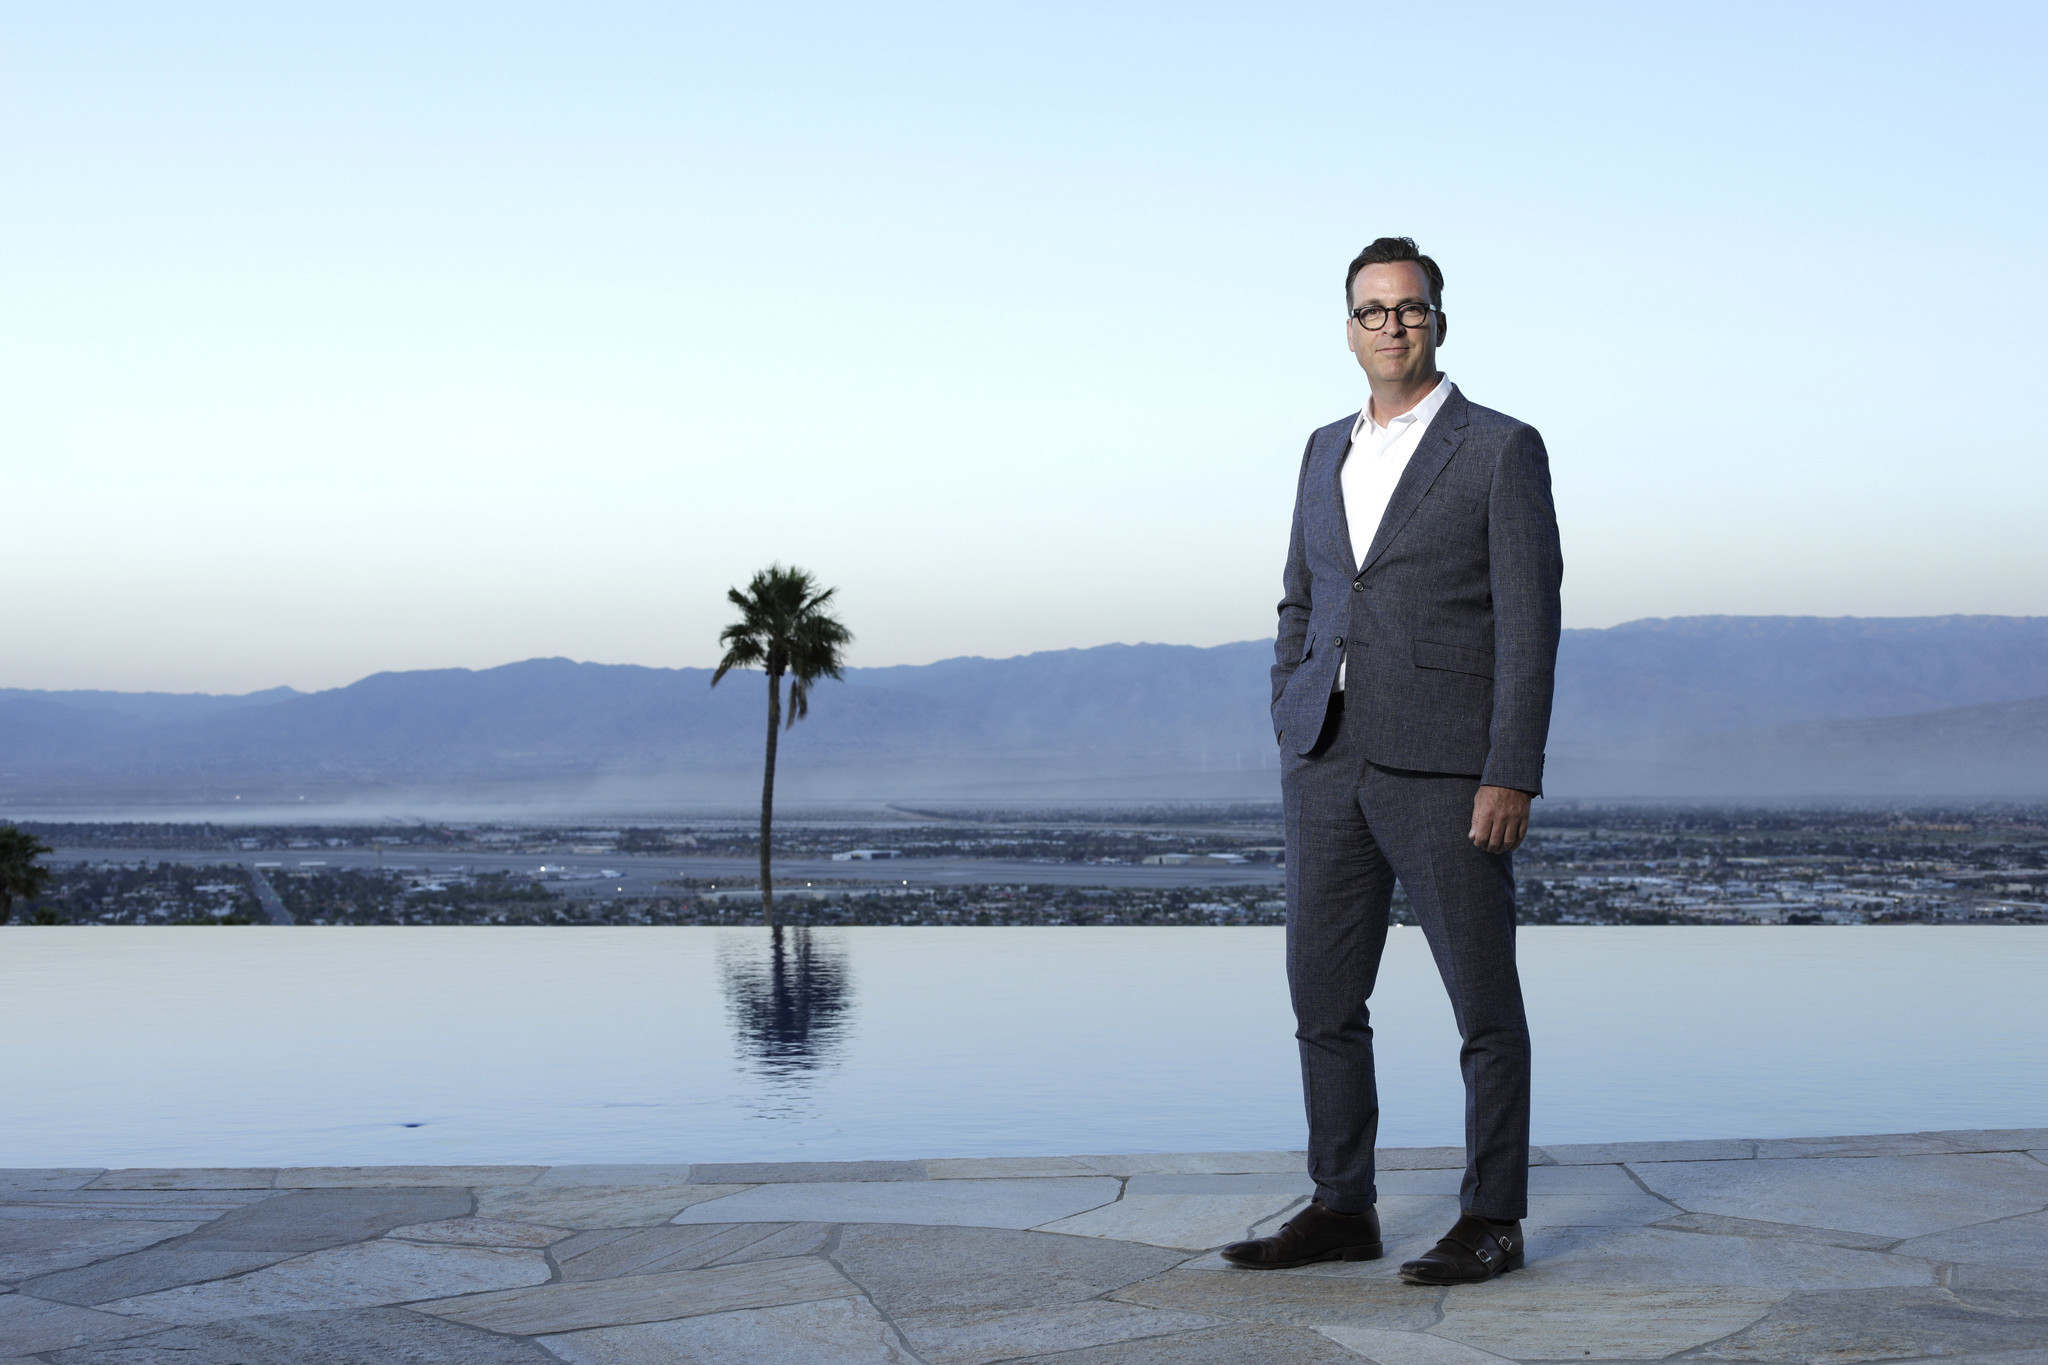 PALM SPRINGS, CA — APRIL 30, 2019: Tim Gleason is the project manager of the Bob Hope house in Palm